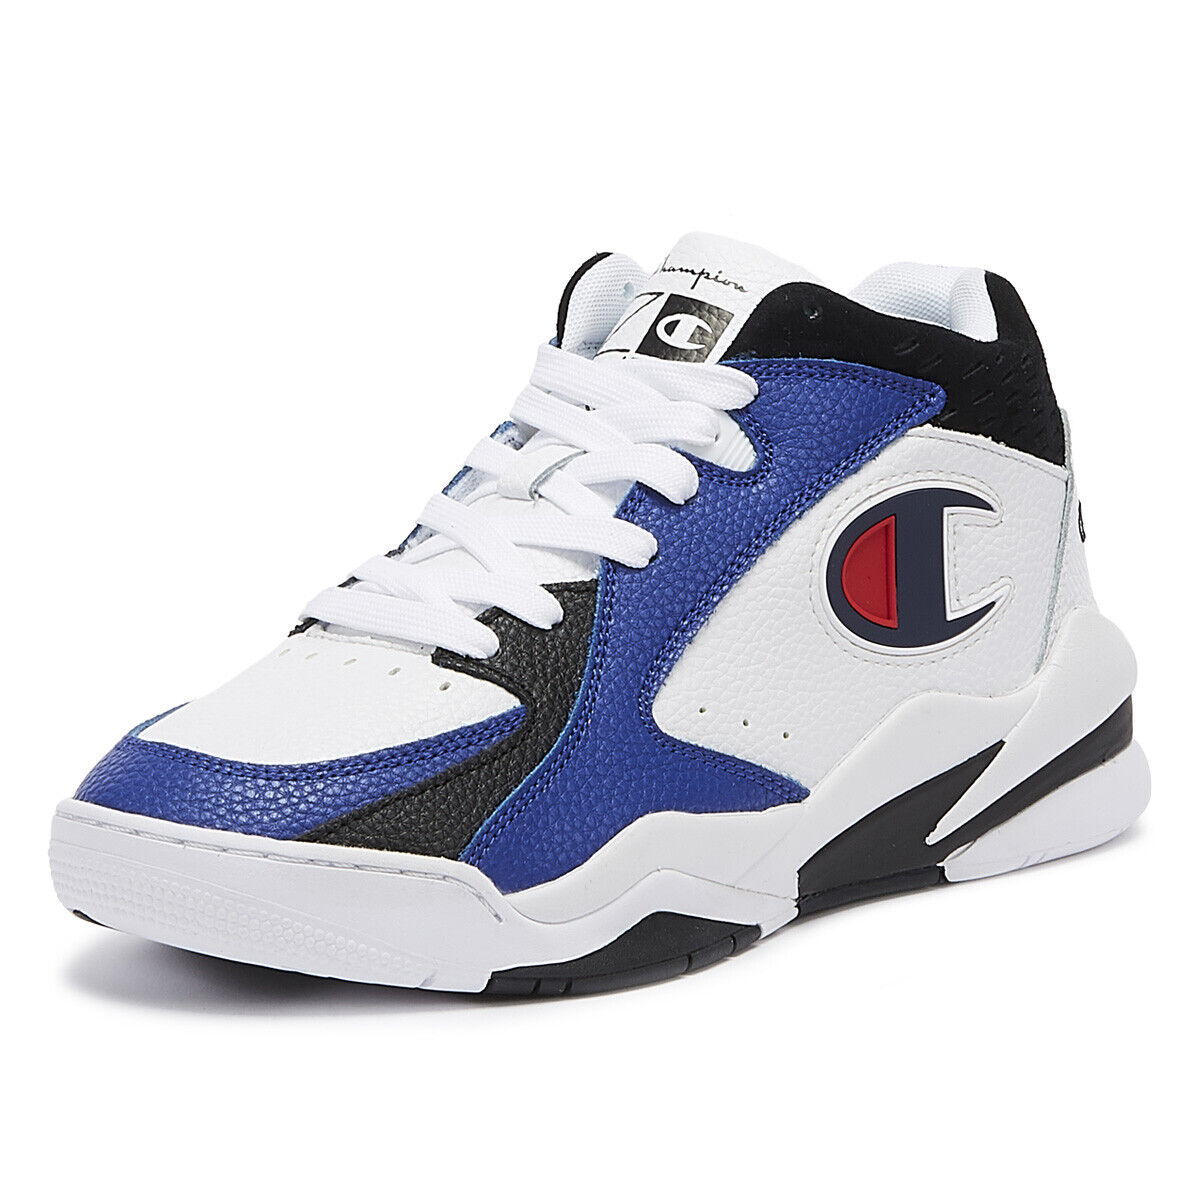 Champion Zone Mid Mens White   Black   Navy Trainers Lace Up Sport Casual shoes